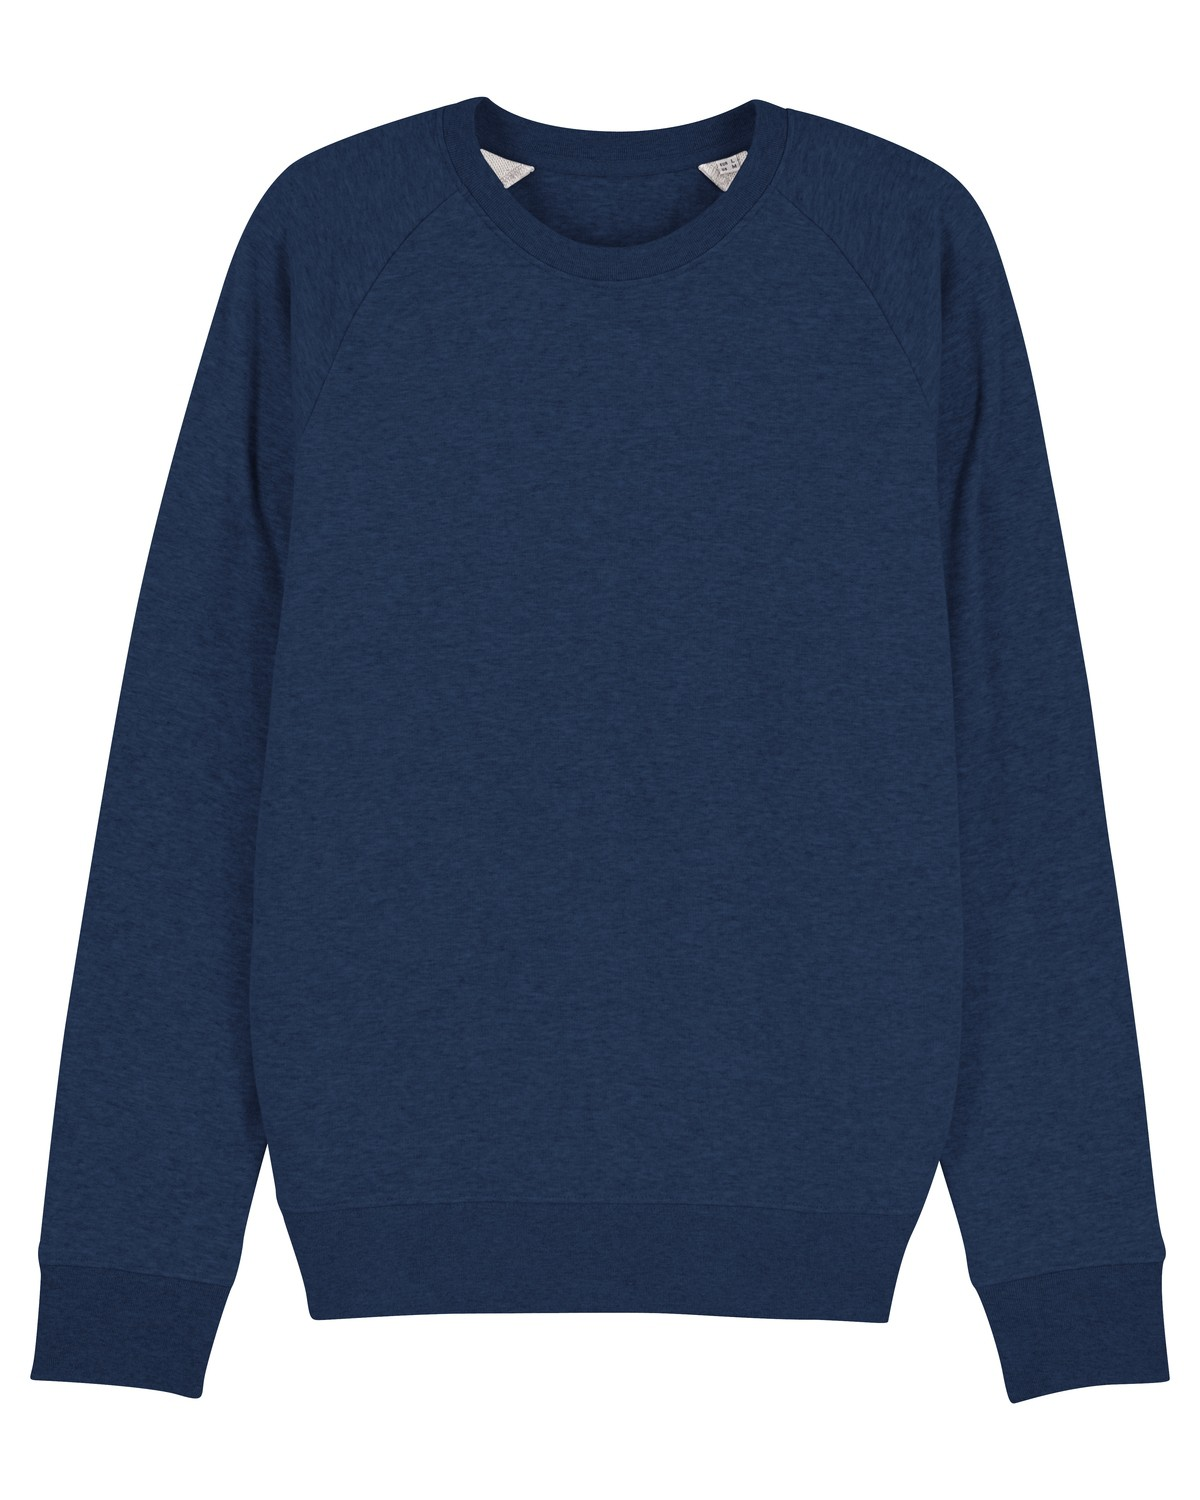 NEU Rundhals Sweatshirt HERREN - (S - XXL) - 100%BW (heather grey und black heather blue)